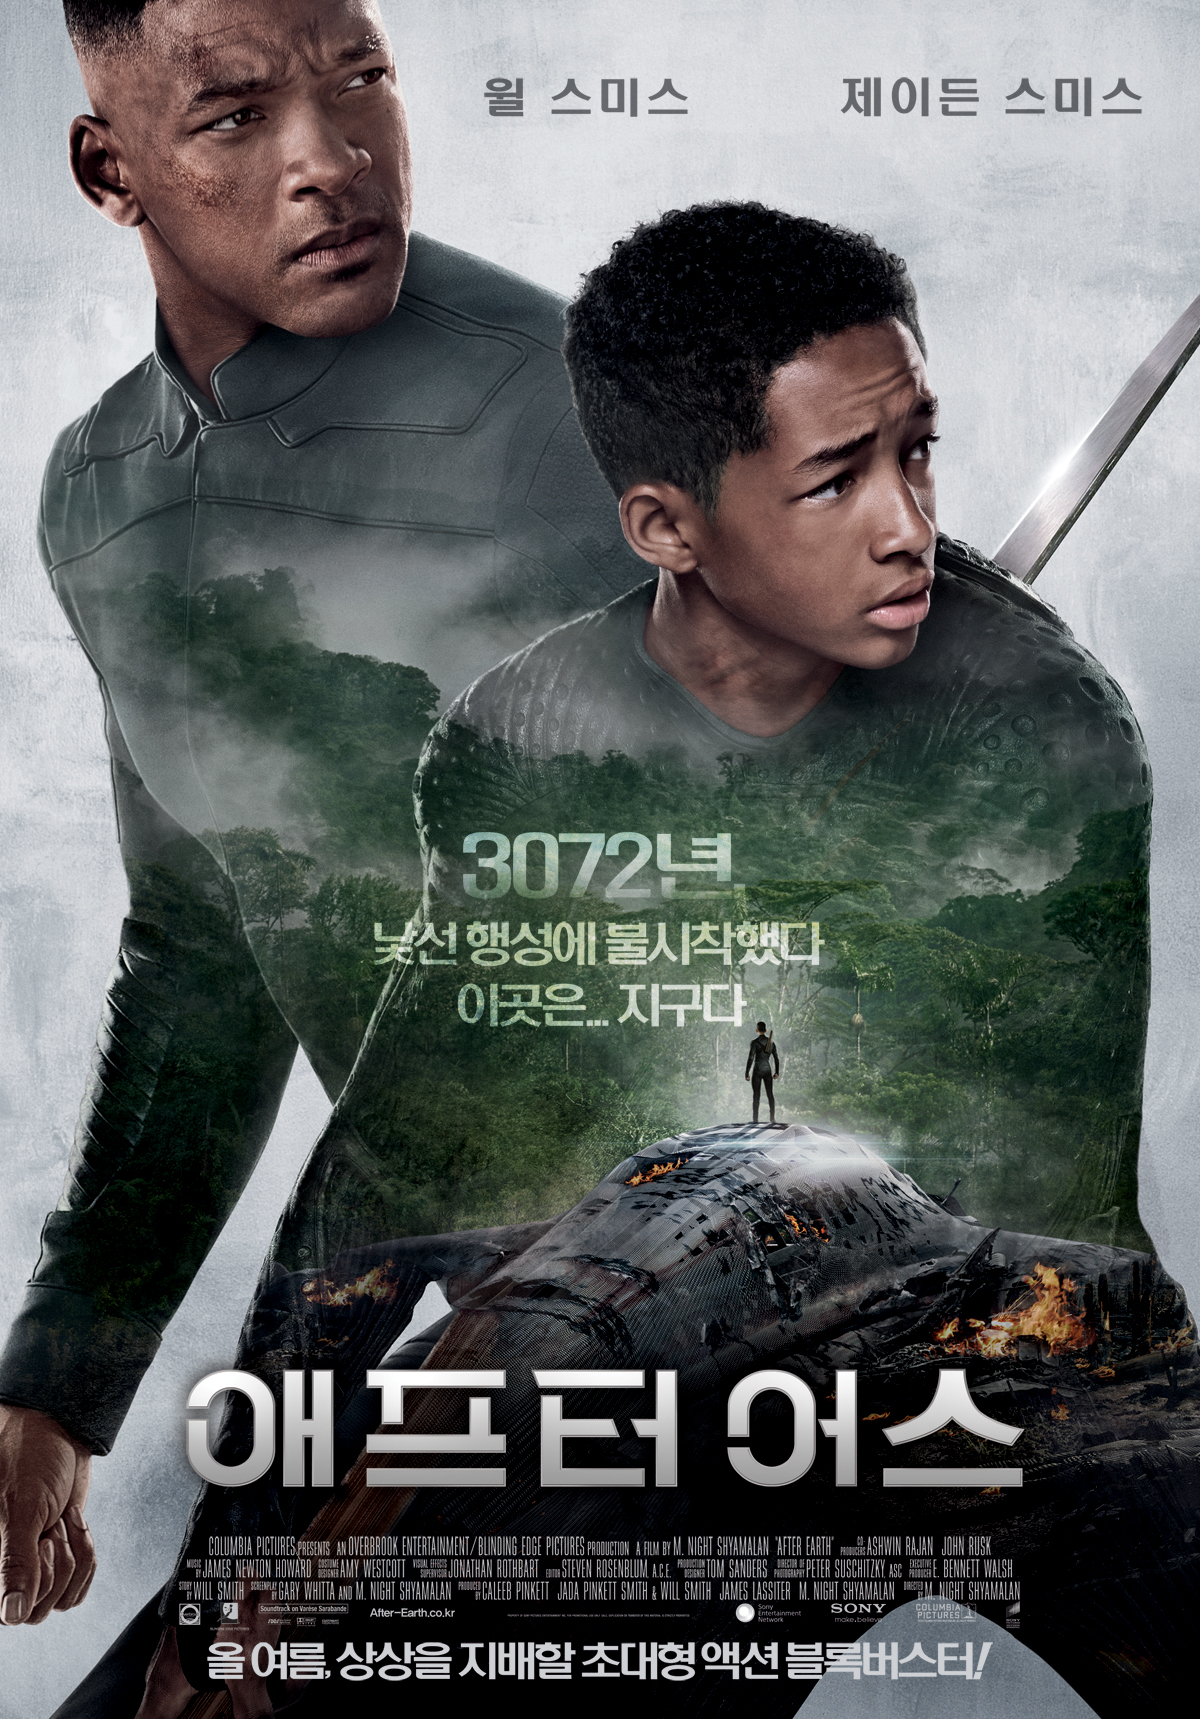 afterearth_poster.jpg